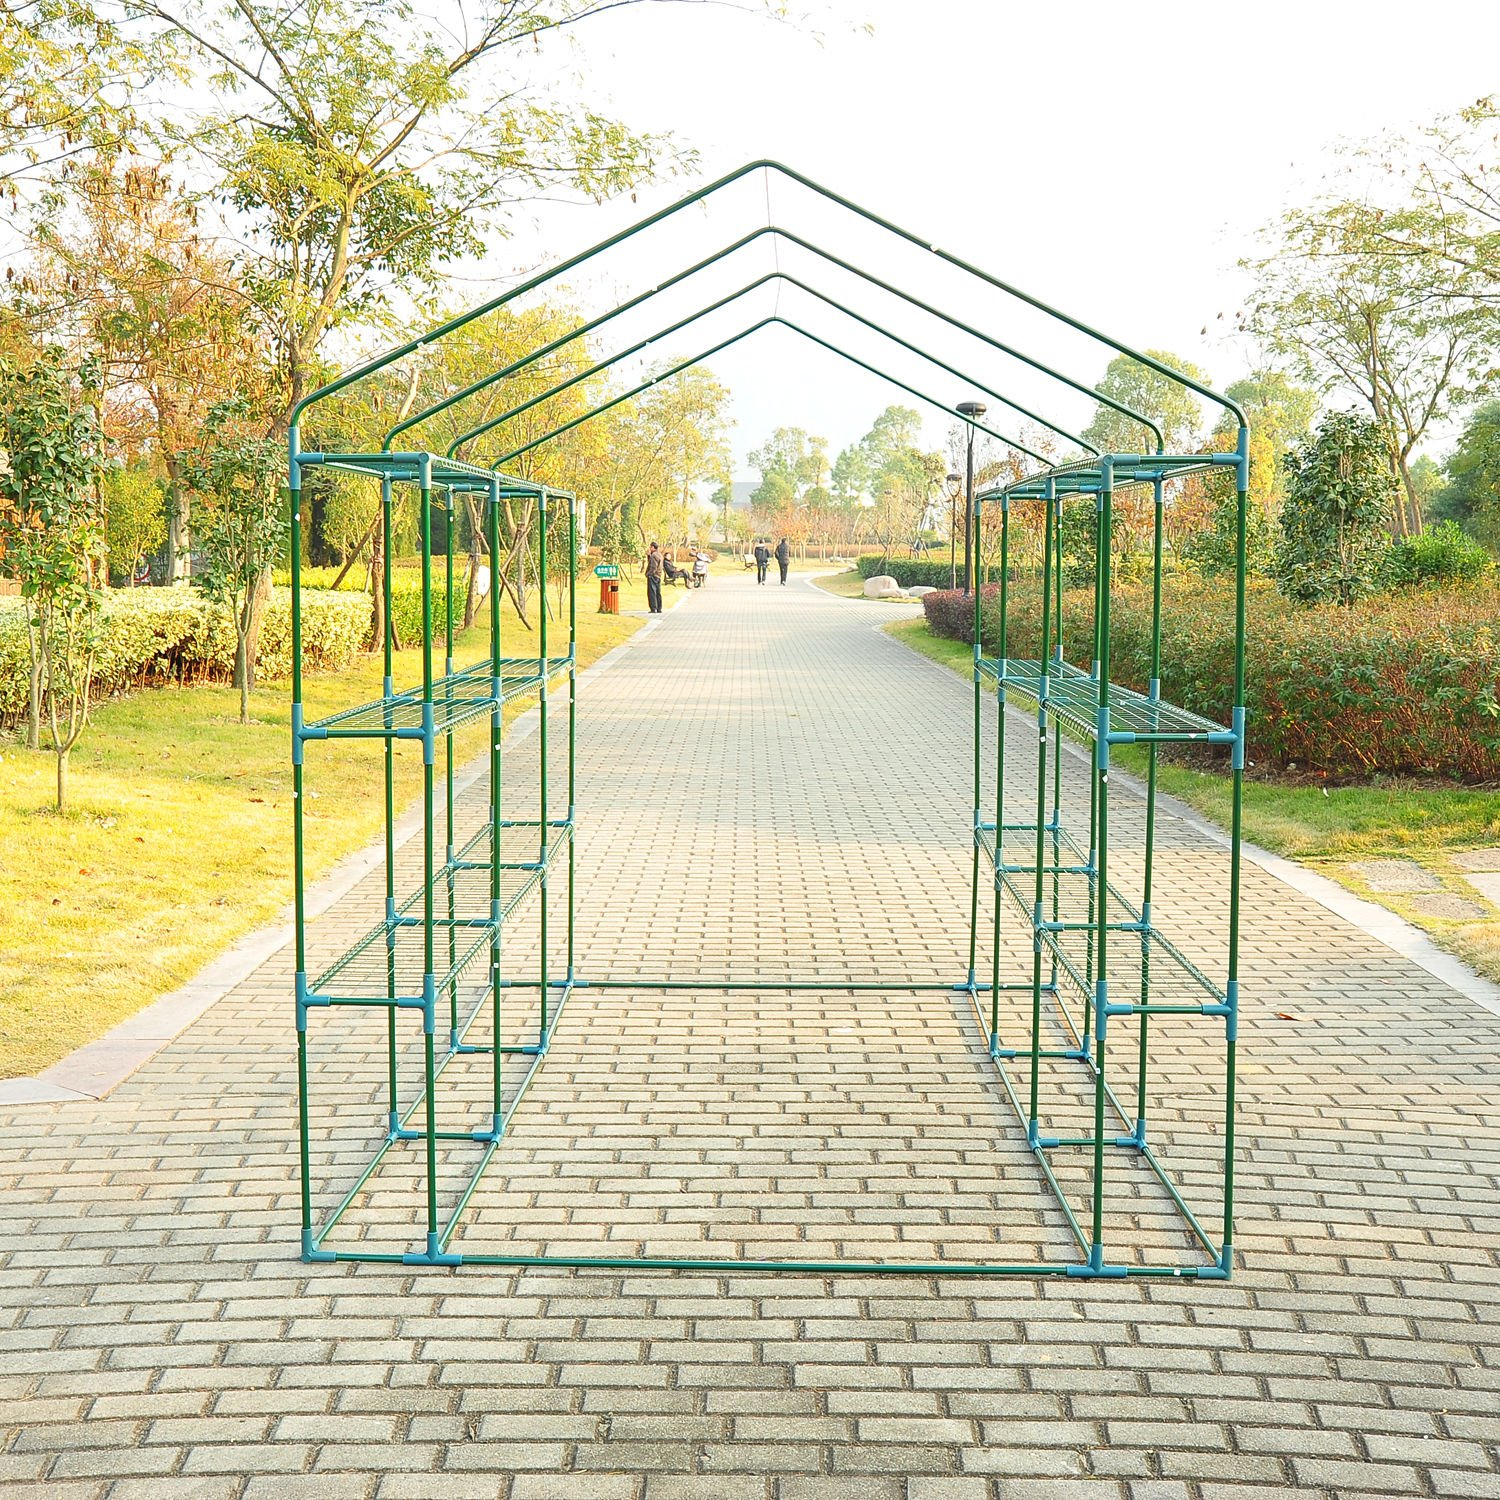 Outsunny 8' x 6' x 7' Outdoor Portable Walk-in Greenhouse by Outsunny (Image #6)